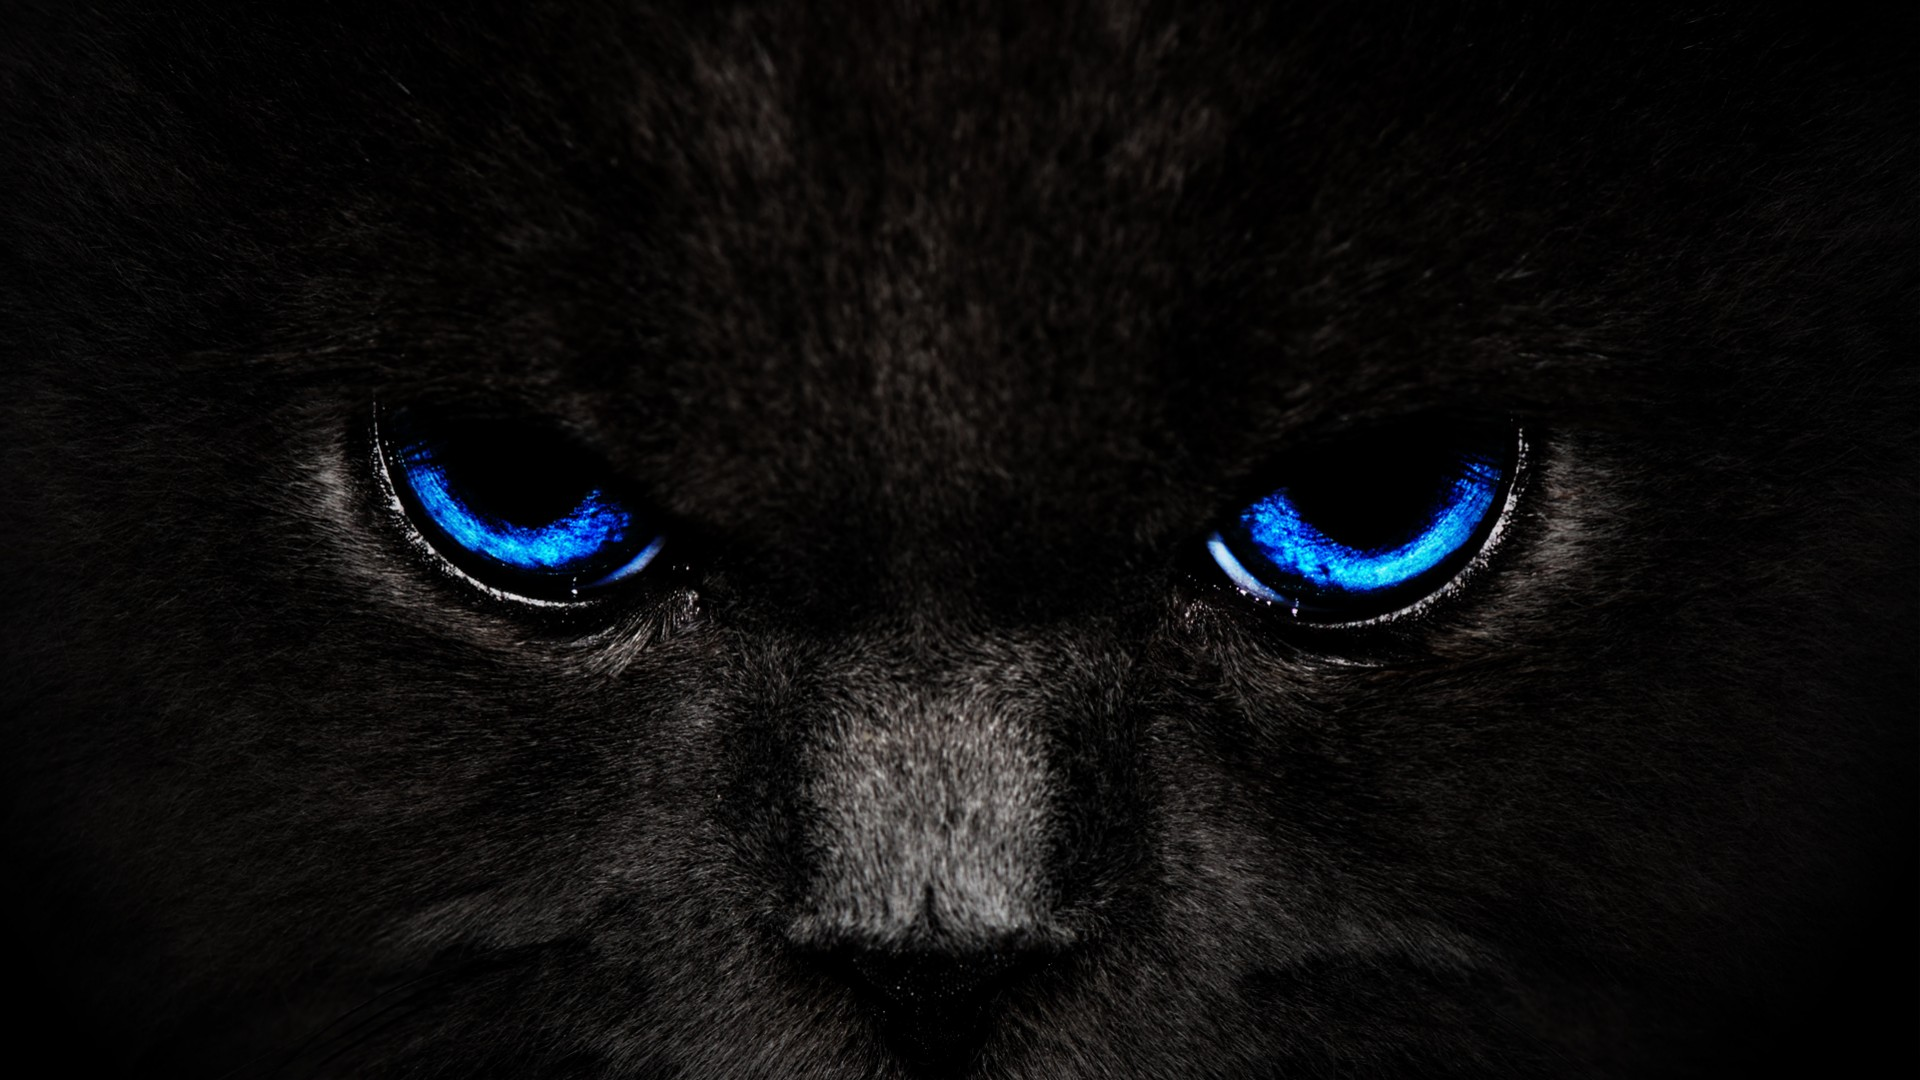 Hd wallpaper eyes - Cat Blue Eyes Free Desktop Wallpaper Pageresource Com